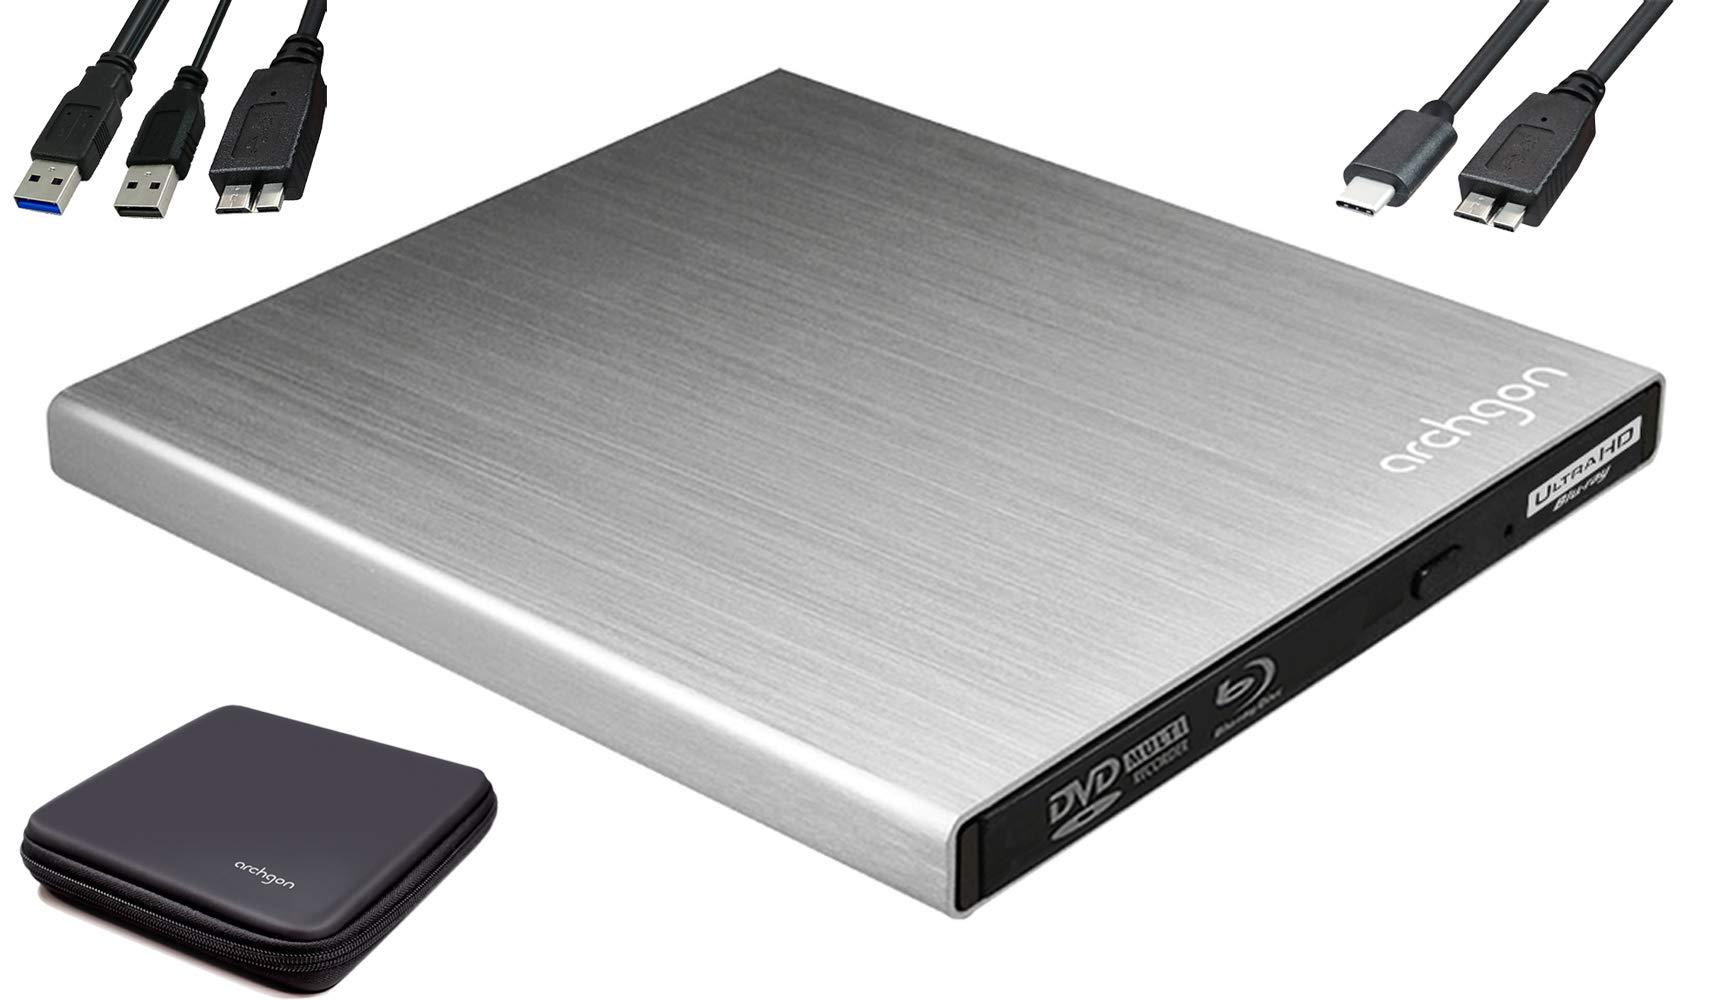 Archgon Star UHD 4K-Ultra HD BD Reproductor Player Externo ...